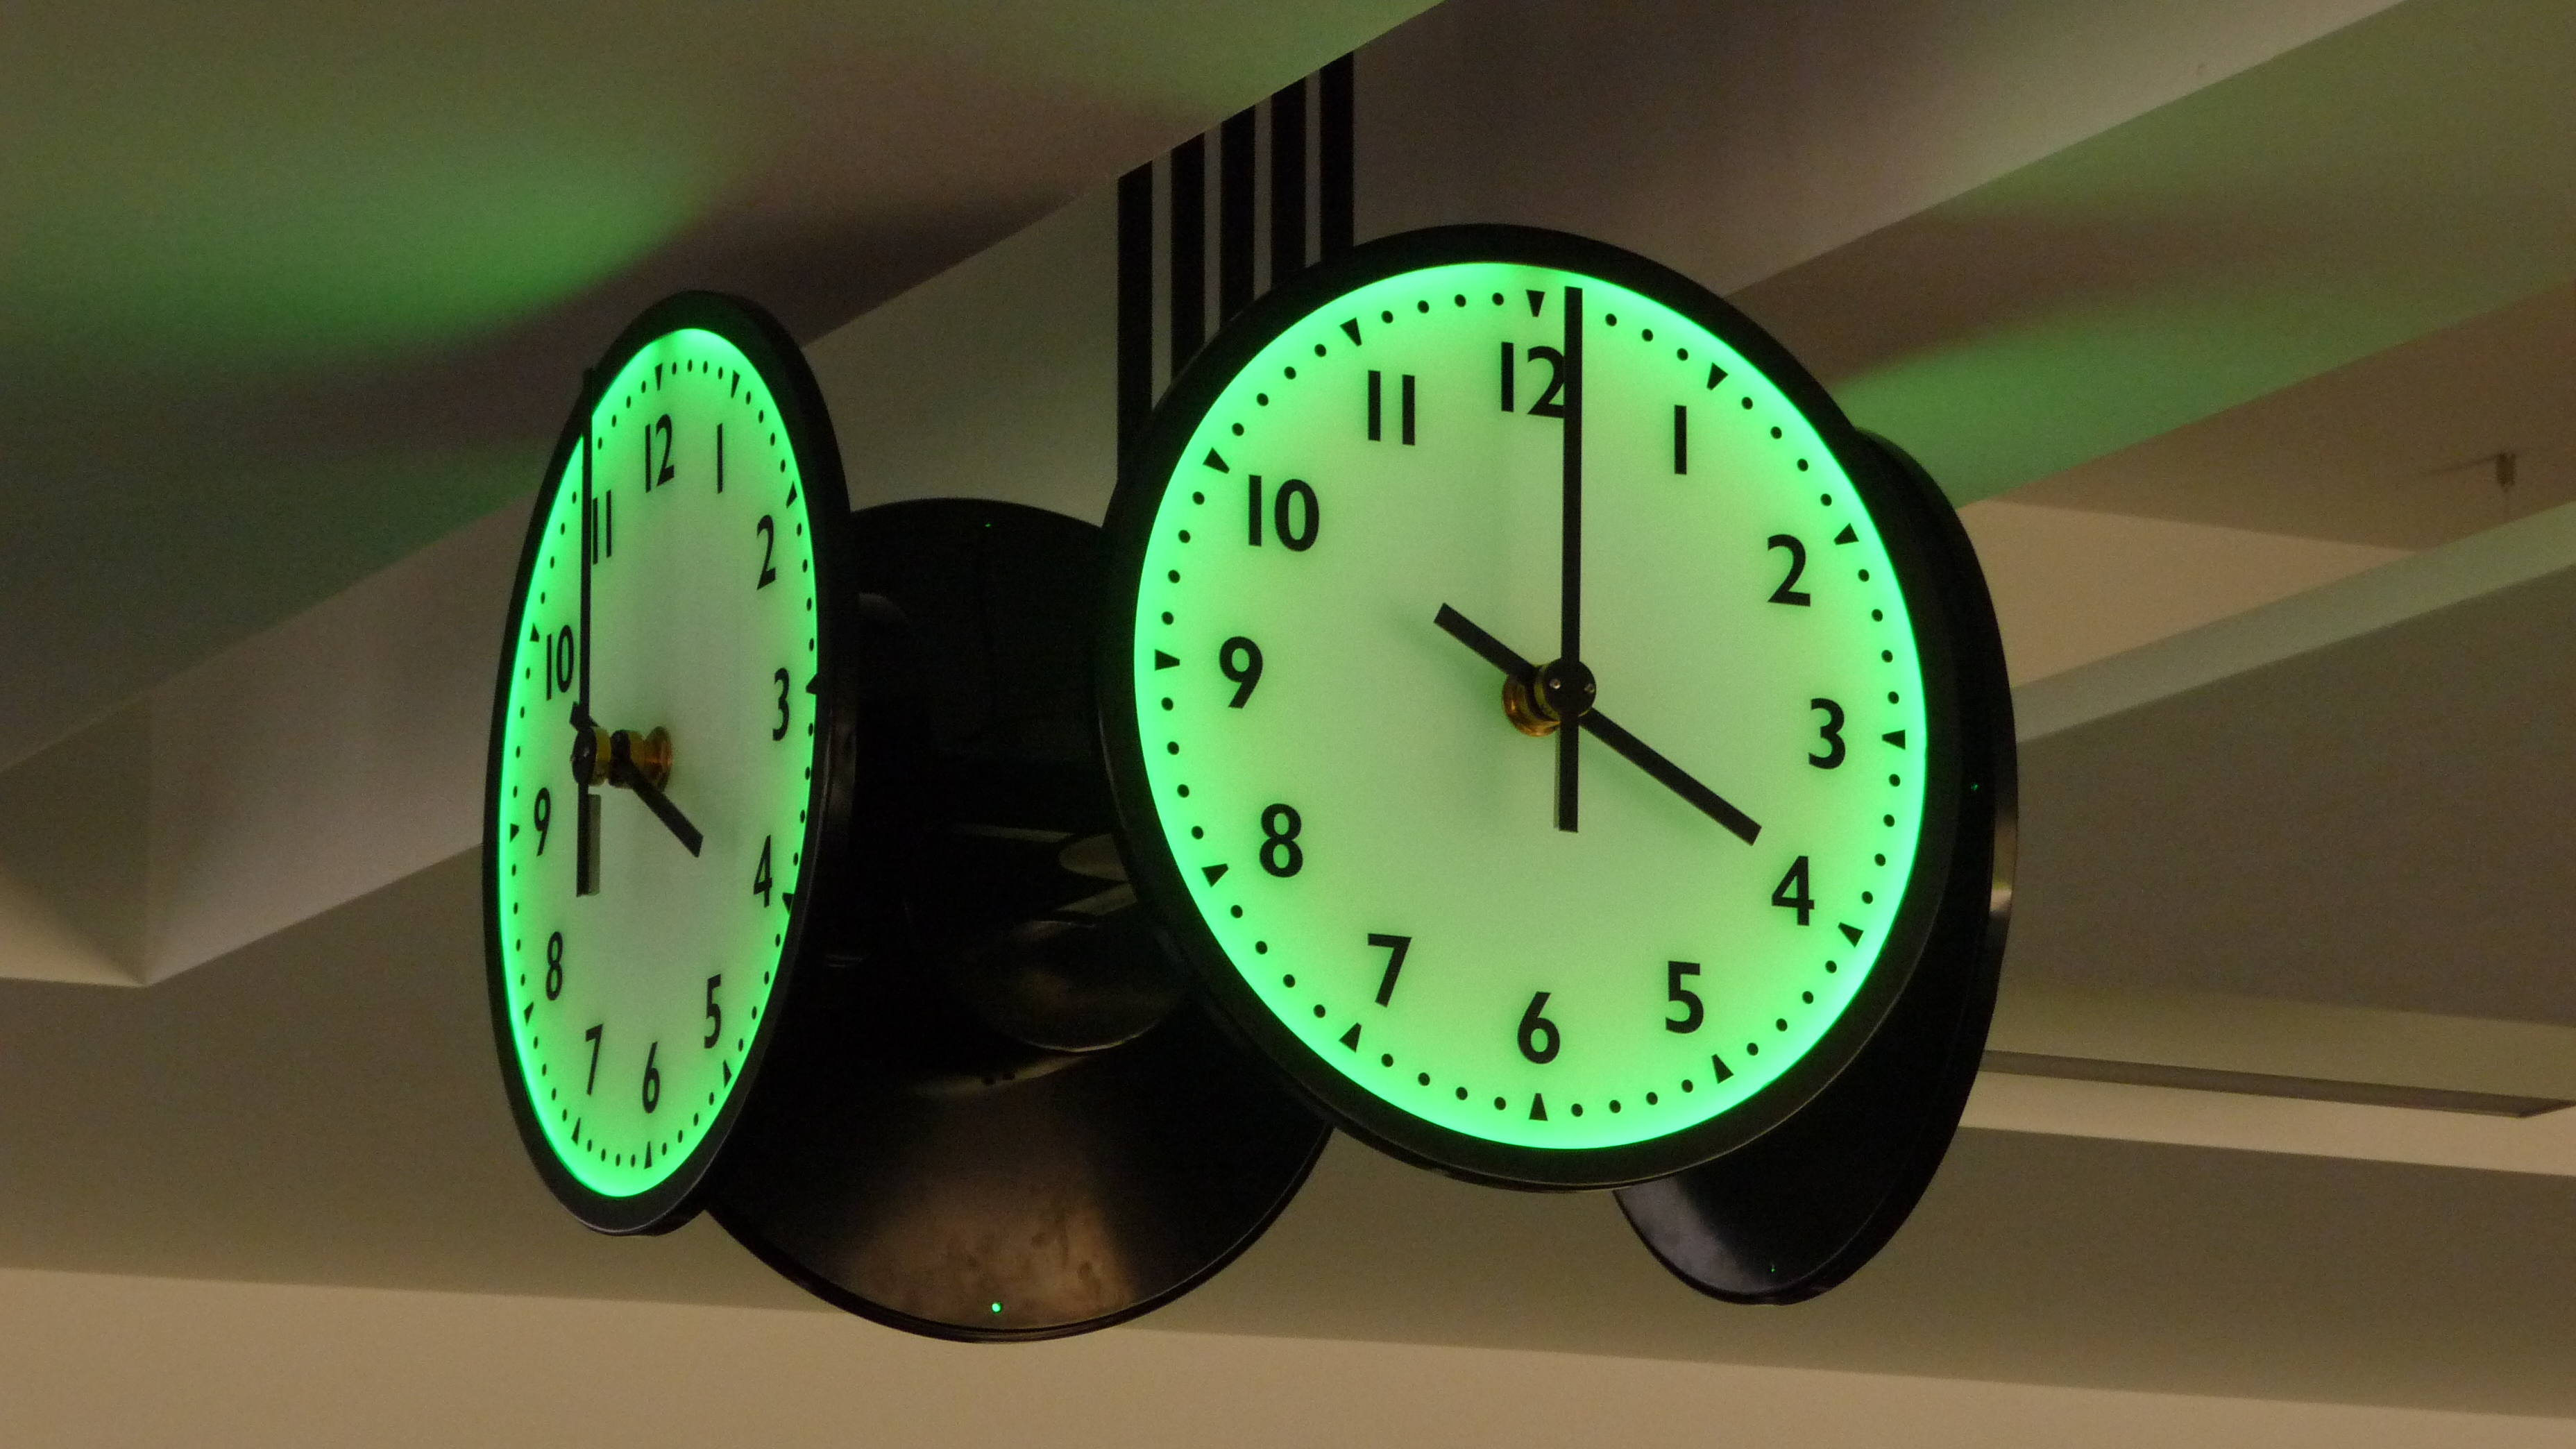 LED colour changing clocks